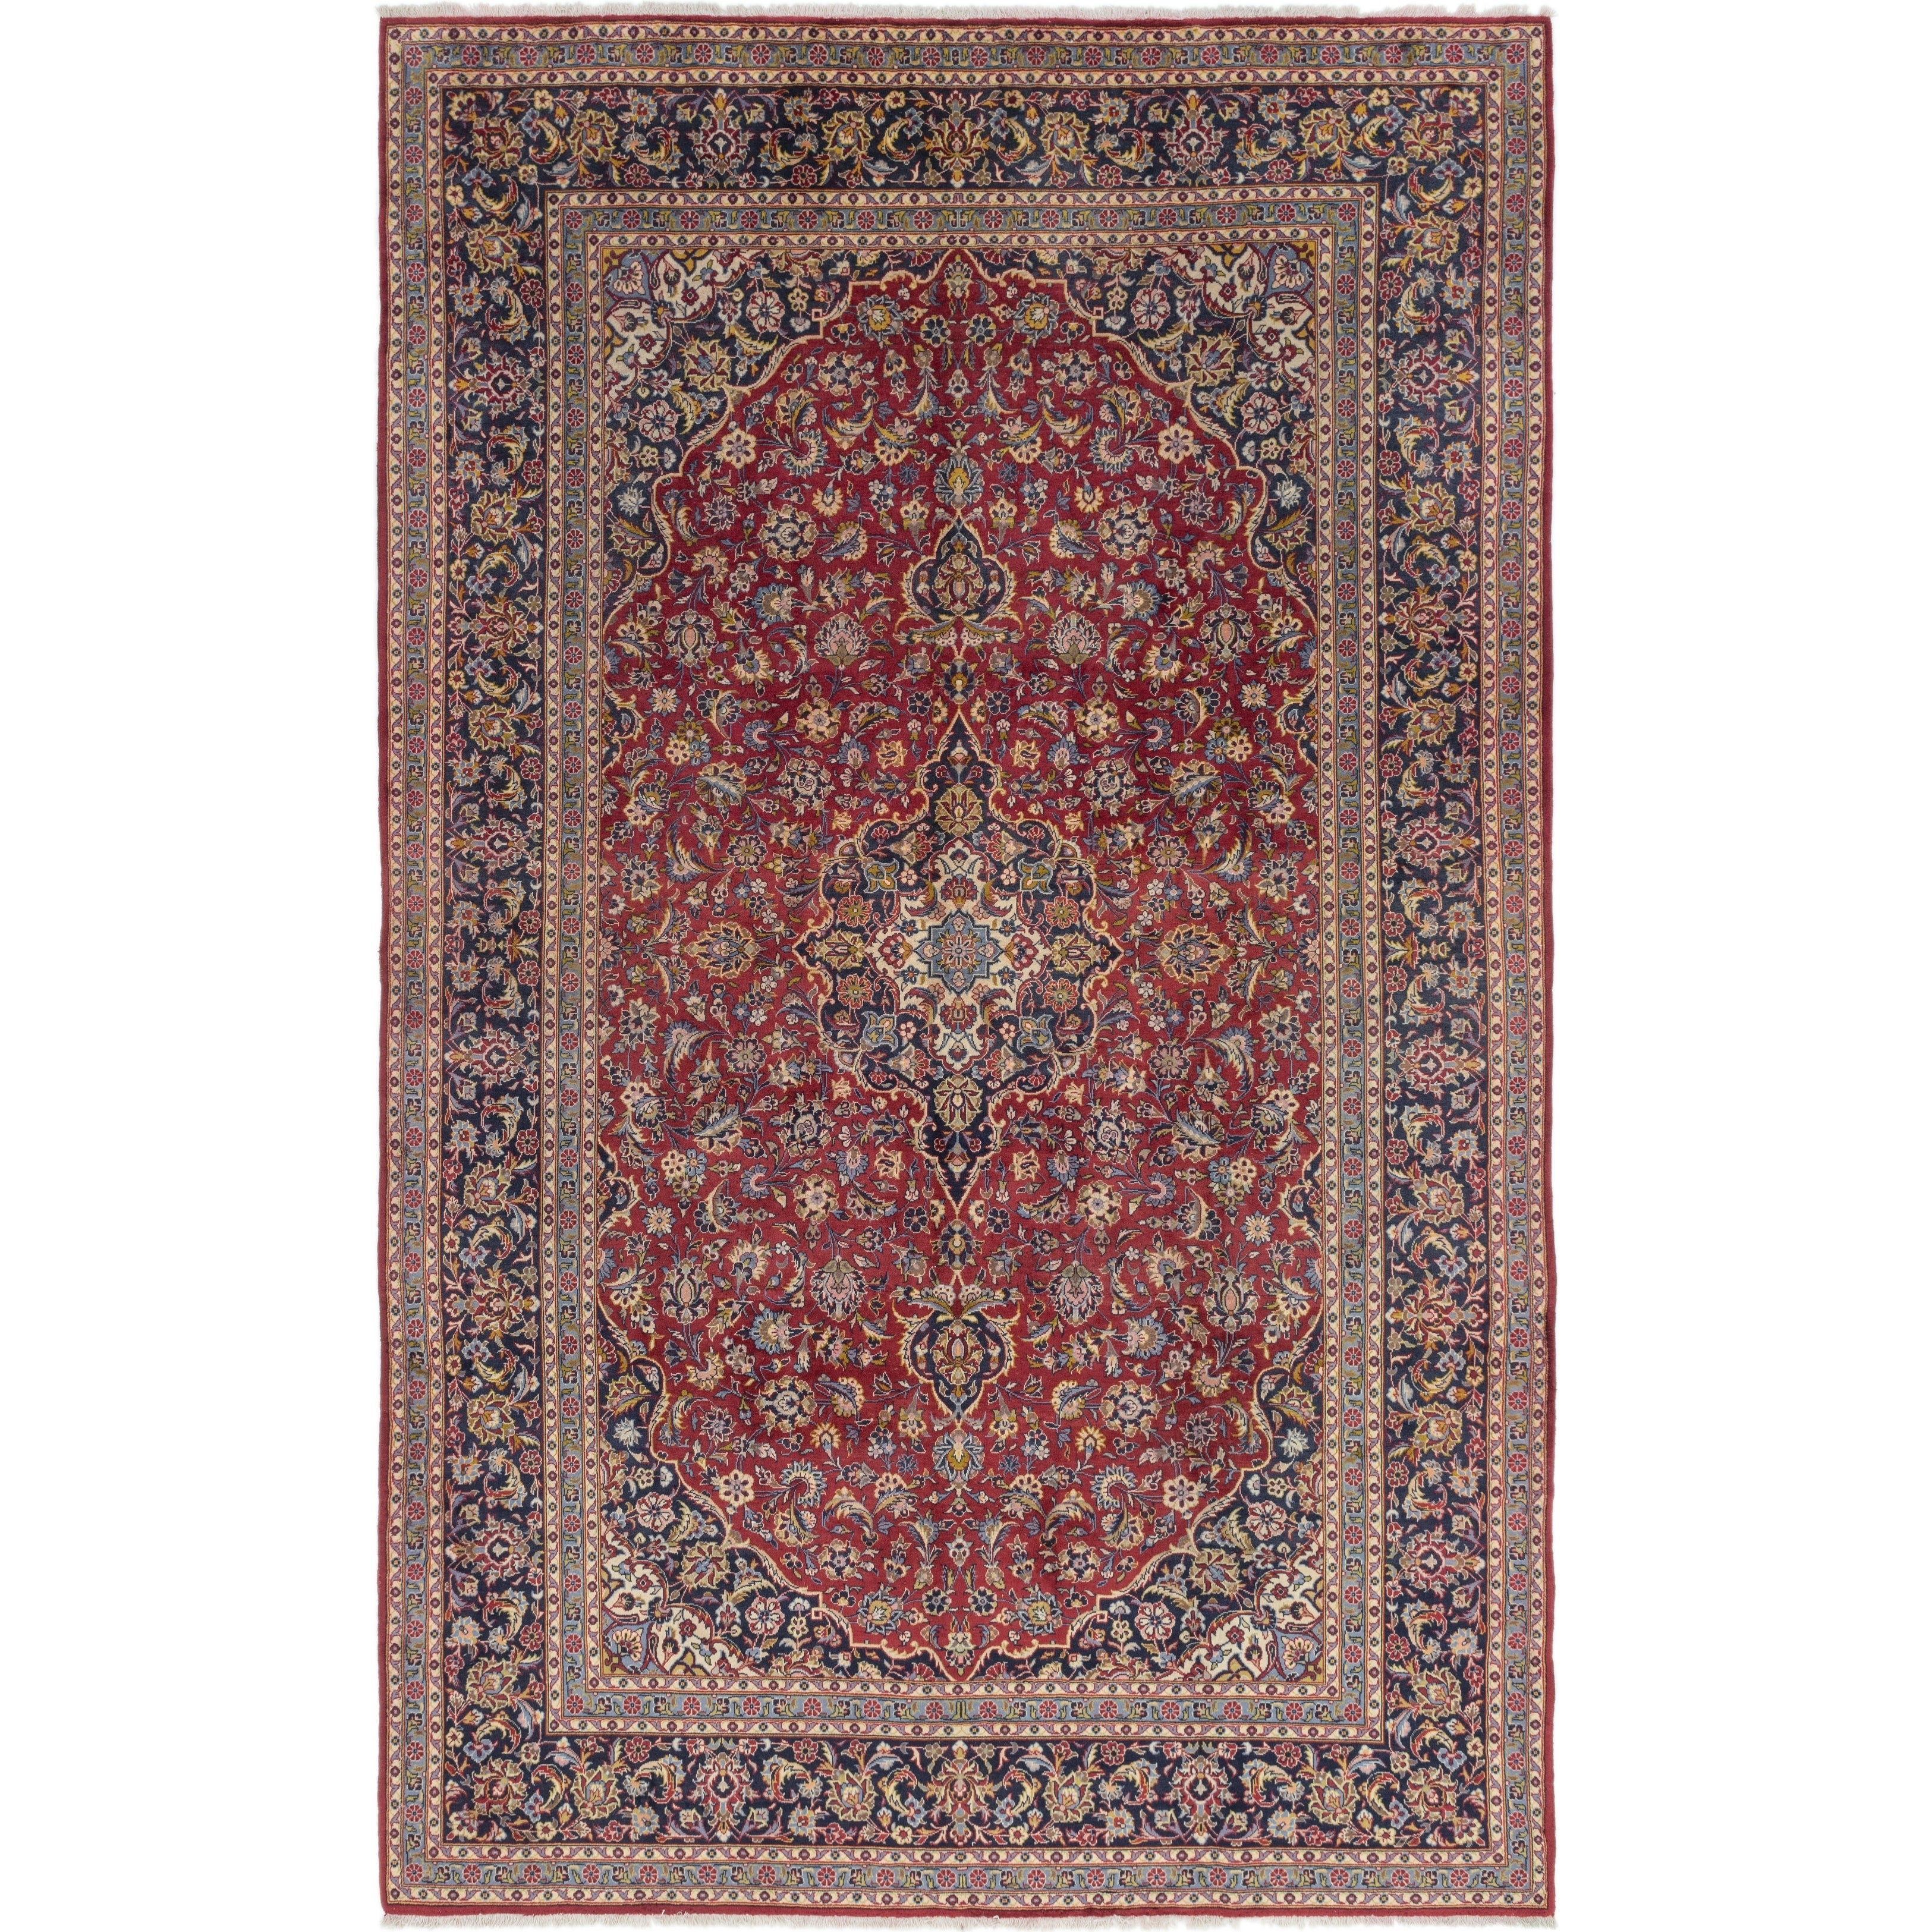 Hand Knotted Kashan Semi Antique Wool Area Rug - 9 9 x 15 10 (Red - 9 9 x 15 10)